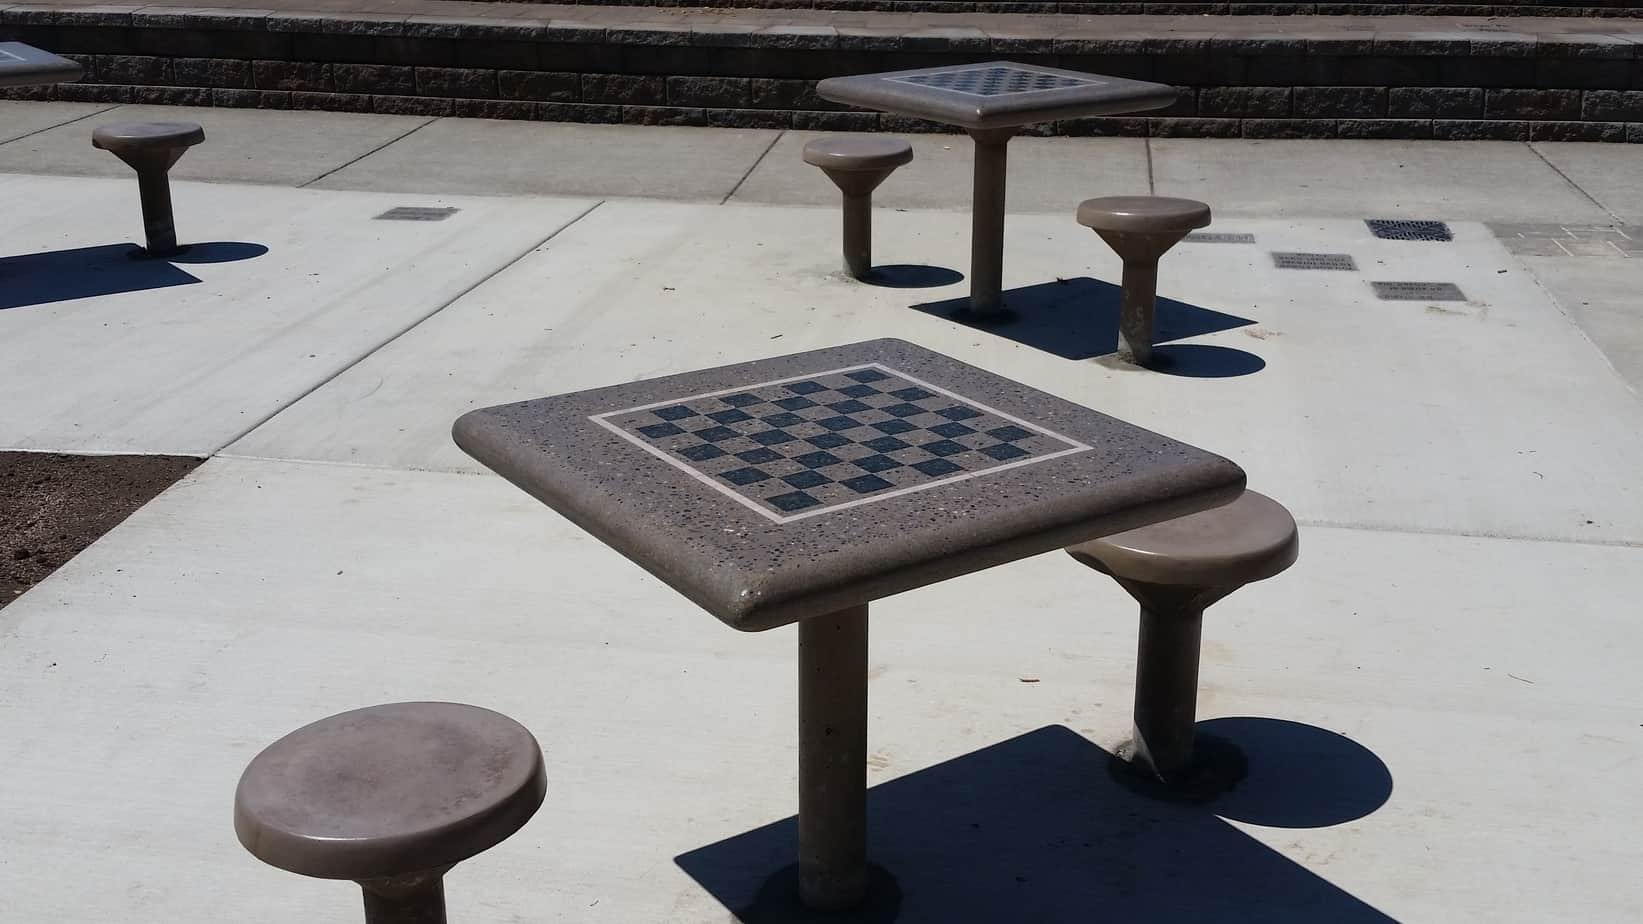 Incroyable 2 Direct Burrial Concrete Chess Tables In A Public Park In Oregon